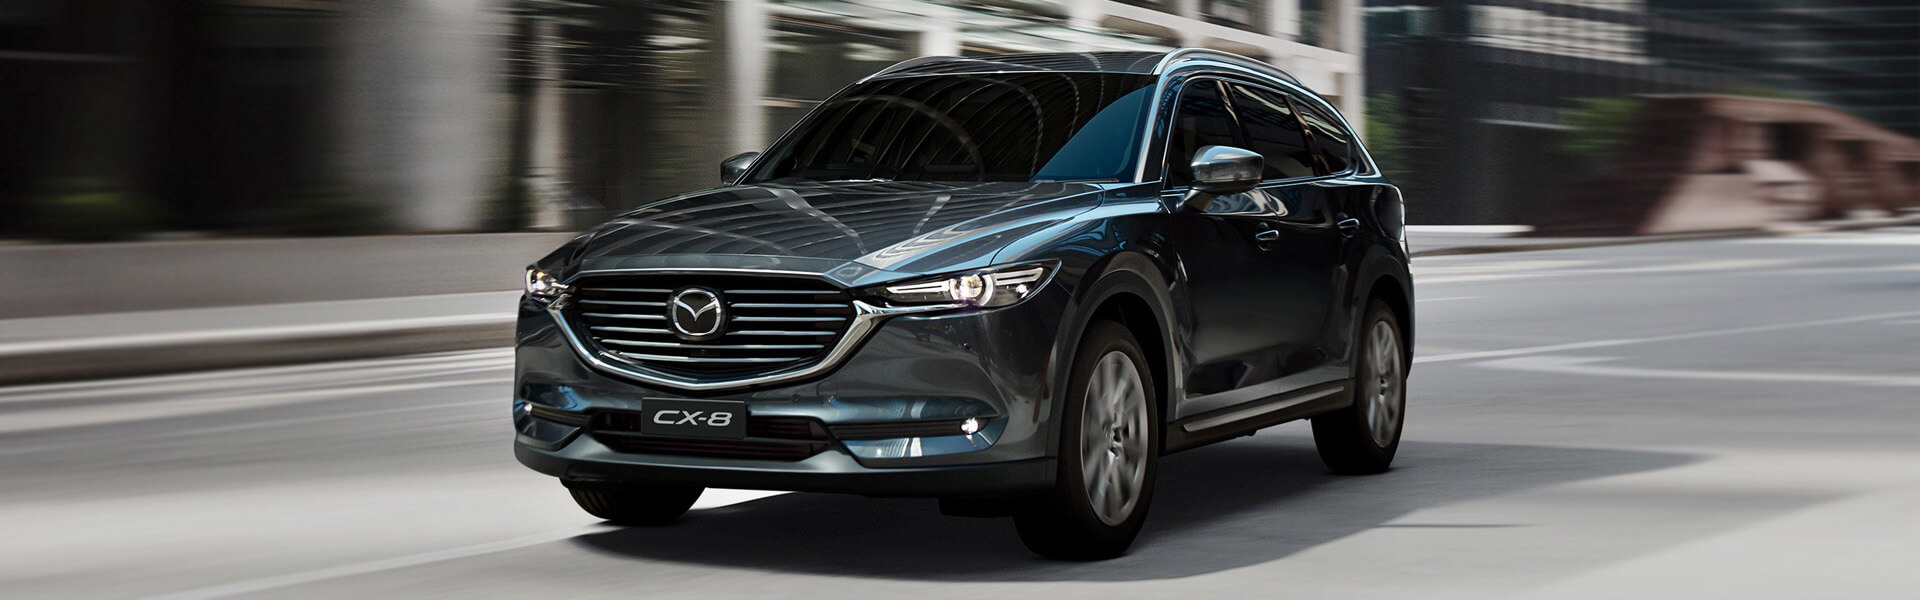 CX-8 DESIGNED WITH THE FUTURE IN MIND